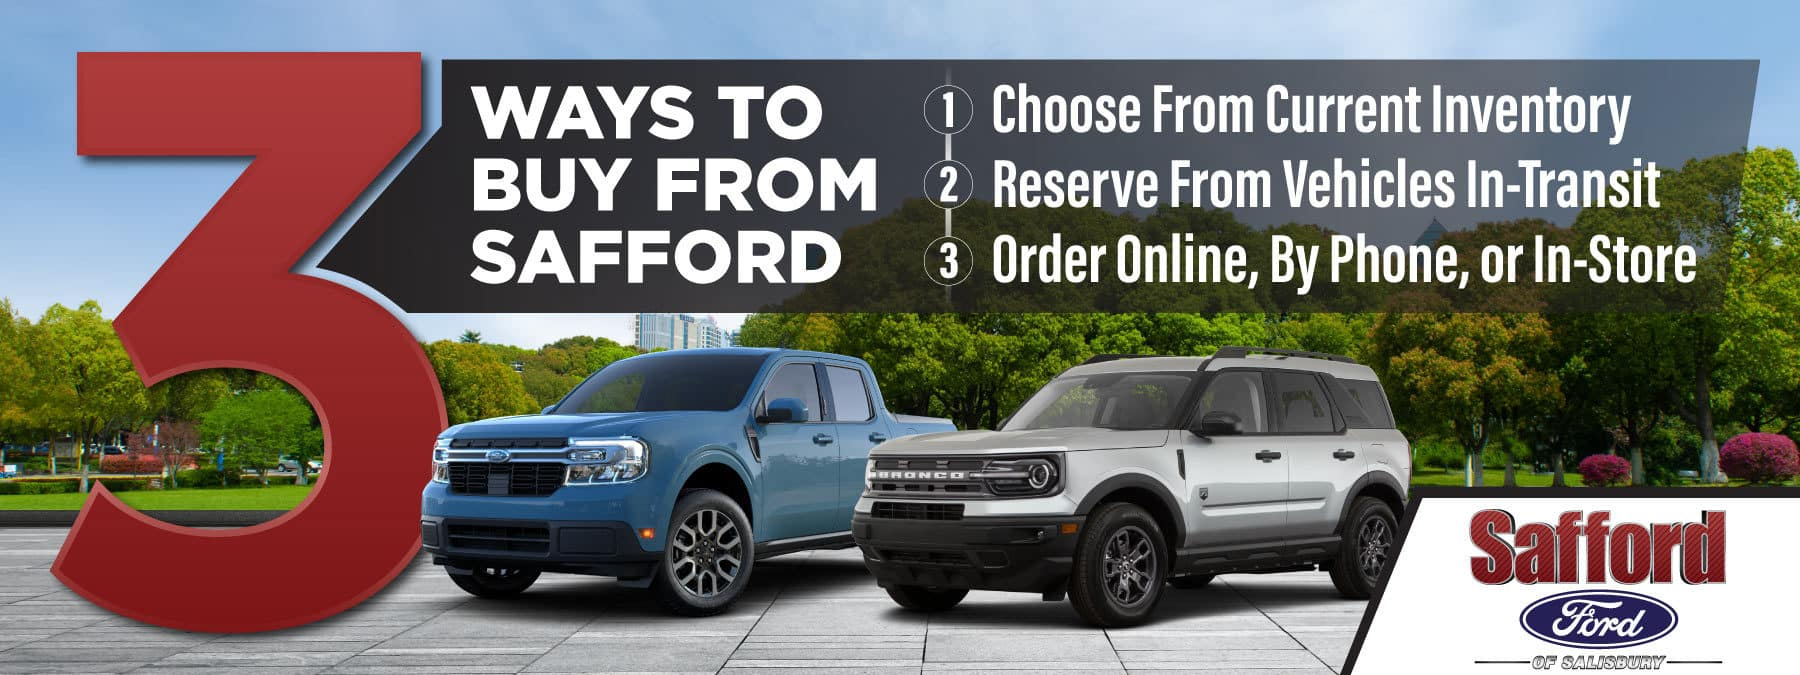 3 Ways to Buy from Safford - Choose from current inventory, reserve from vehicles in-transit, and order online, by phone, or in-store